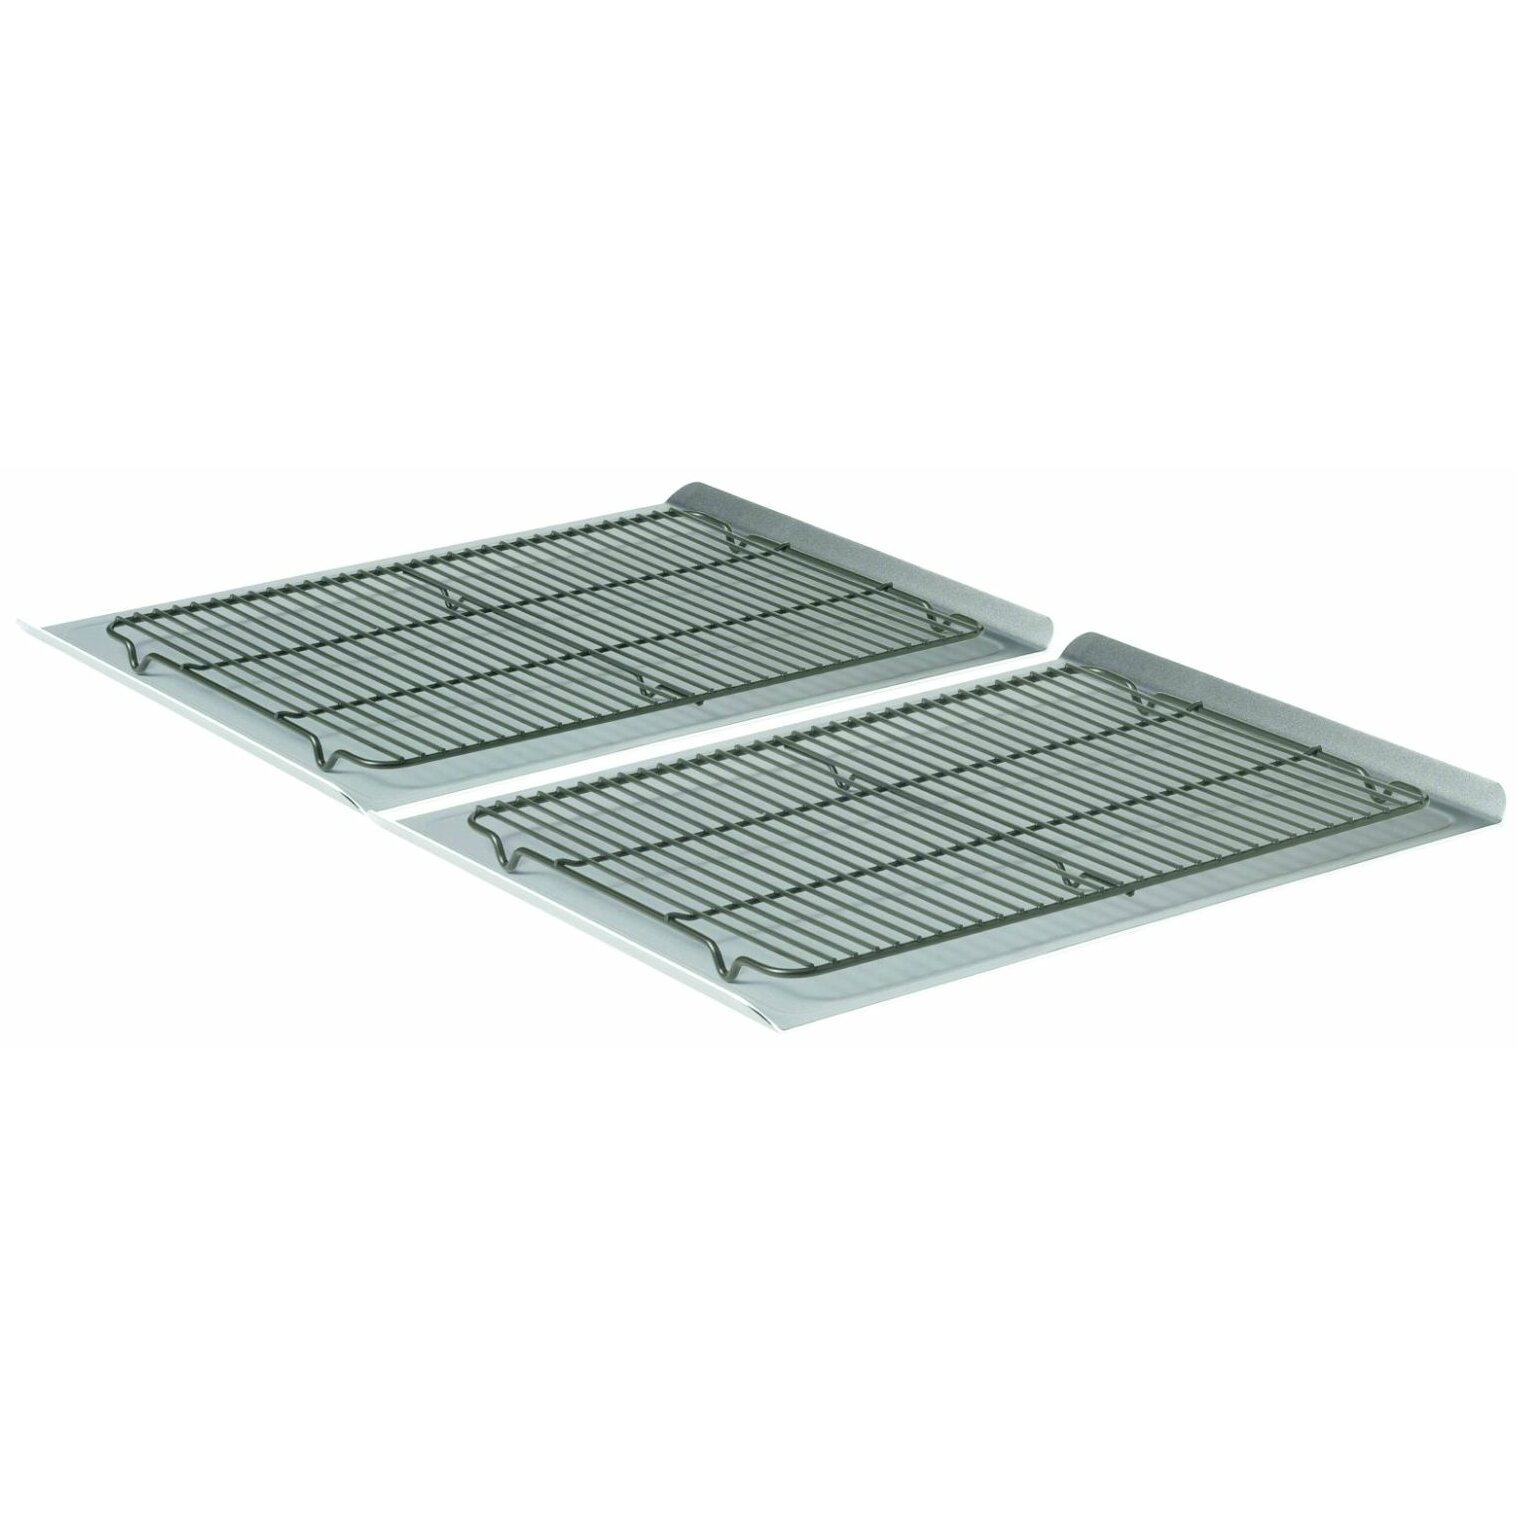 Non Stick Kitchen Appliances Calphalon 4 Piece 19 Non Stick Cookie Sheet And Cooling Rack Set